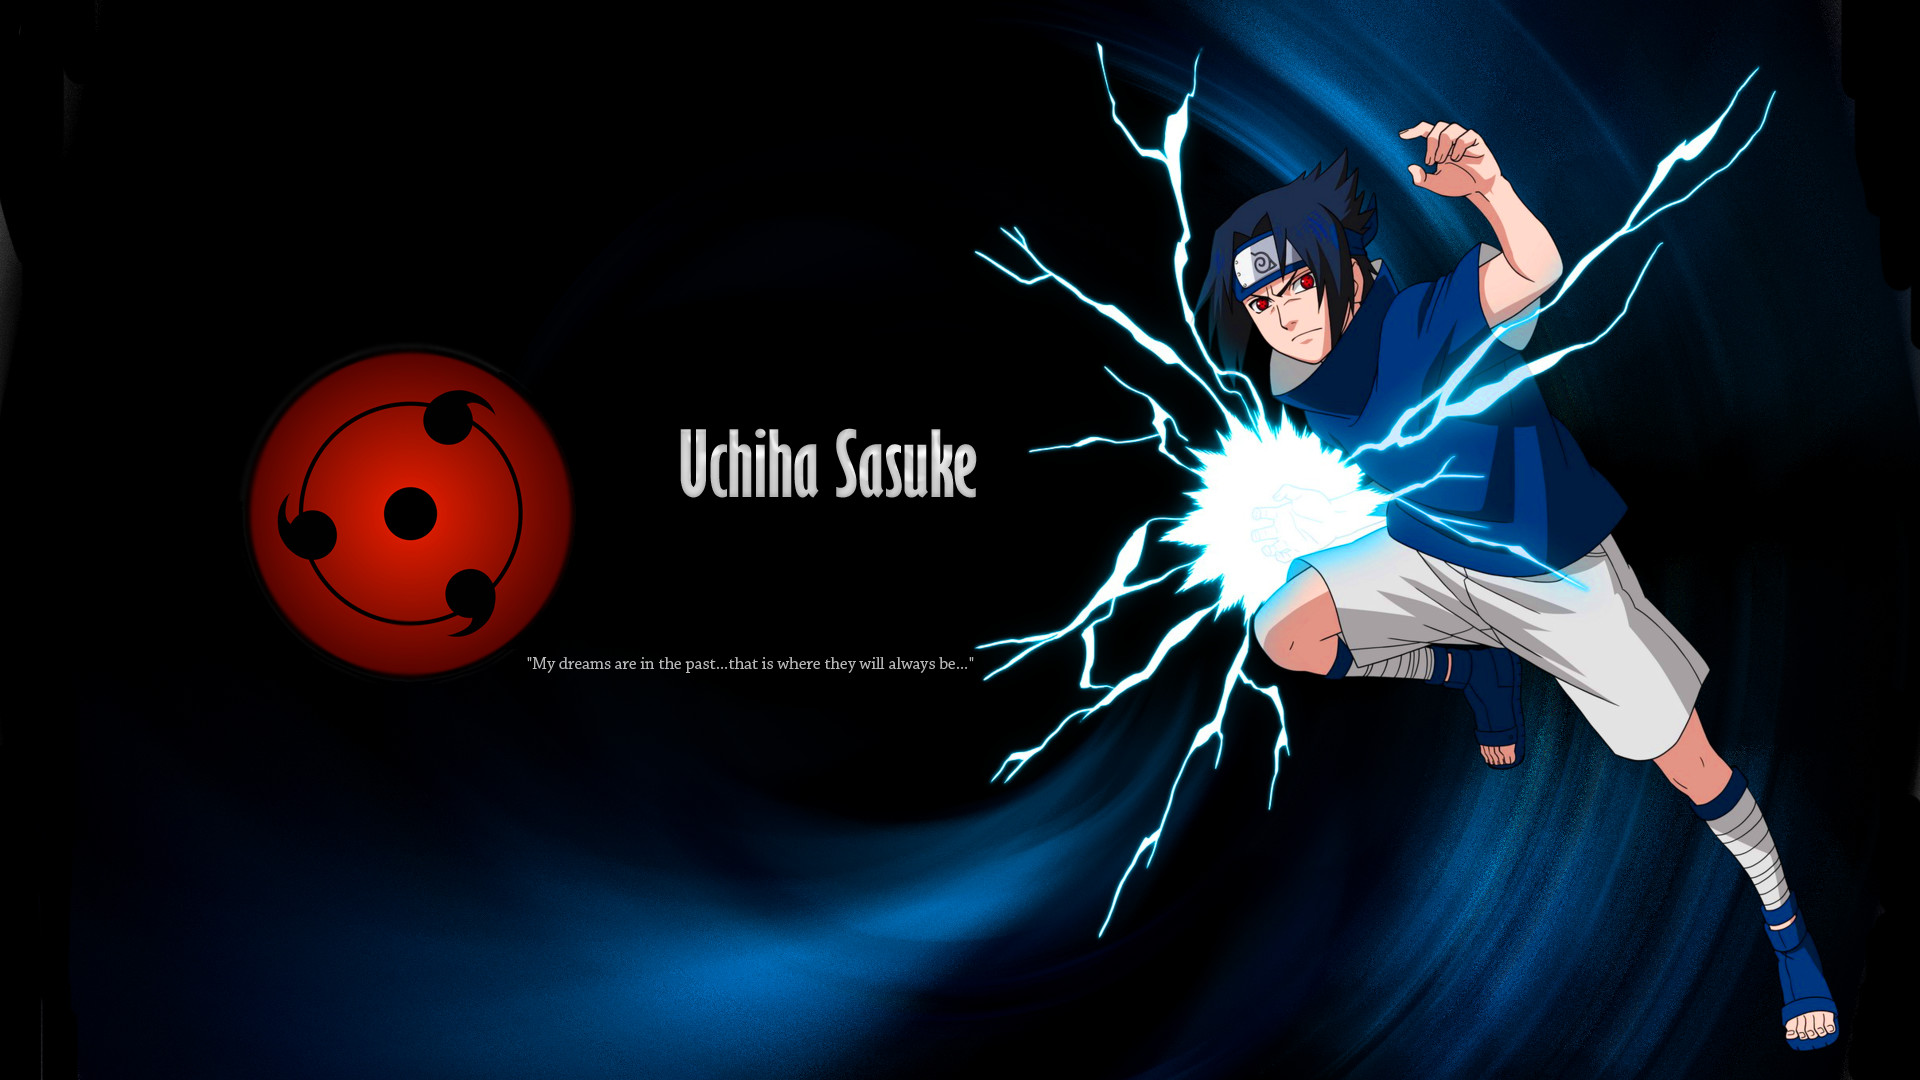 1920x1080 Naruto Shippuden Wallpaper PC 5589 Wallpaper Cool Walldiskpaper.com